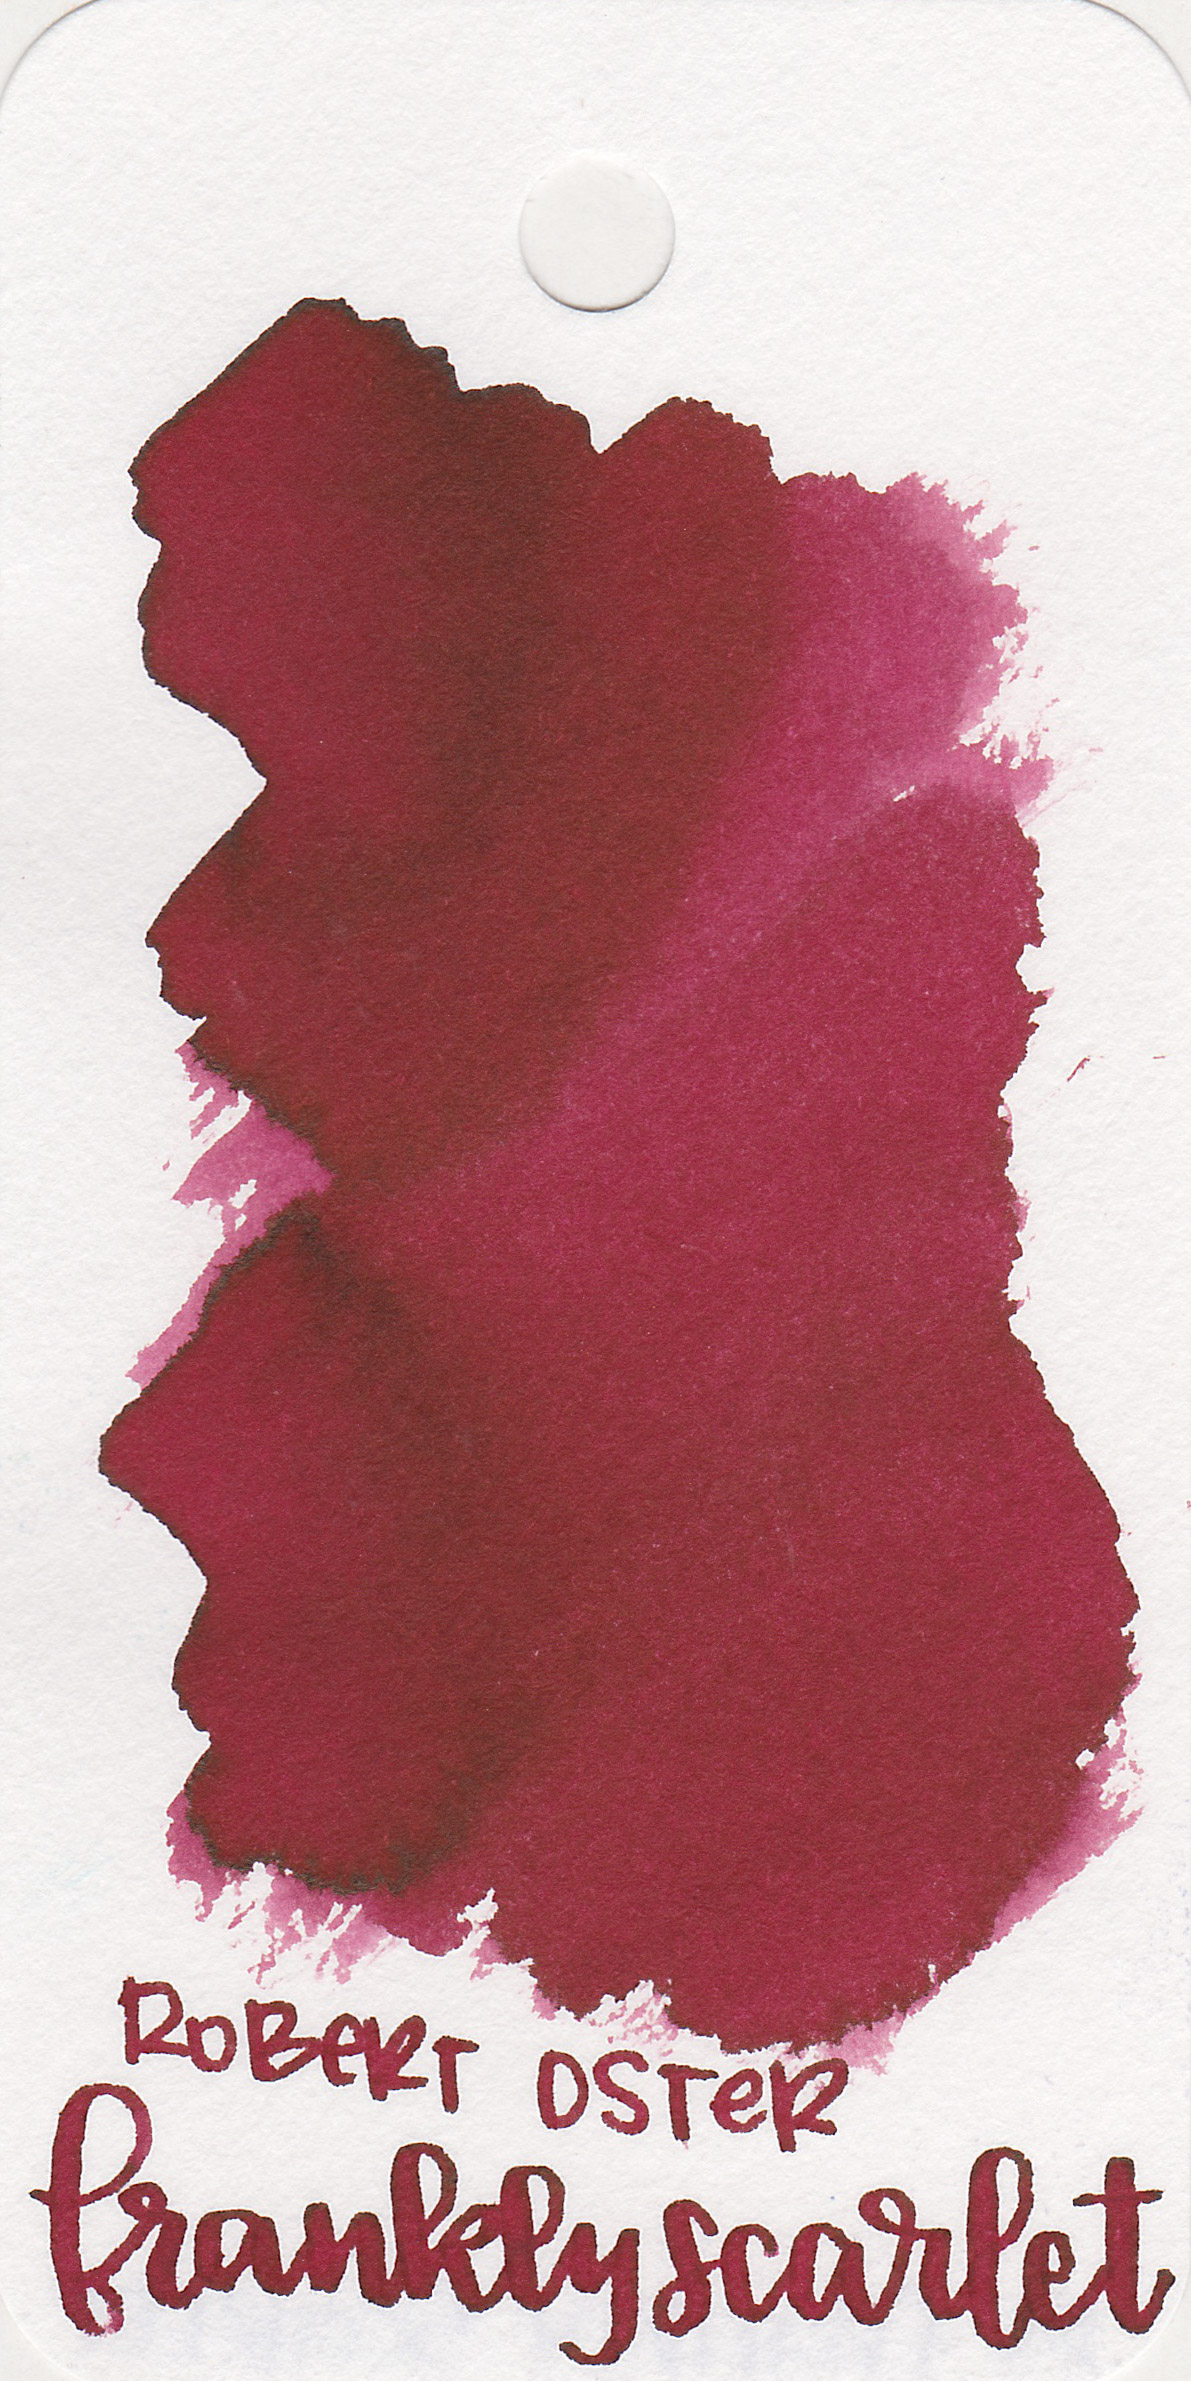 The color: - Frankly Scarlet is an unsaturated dark red.